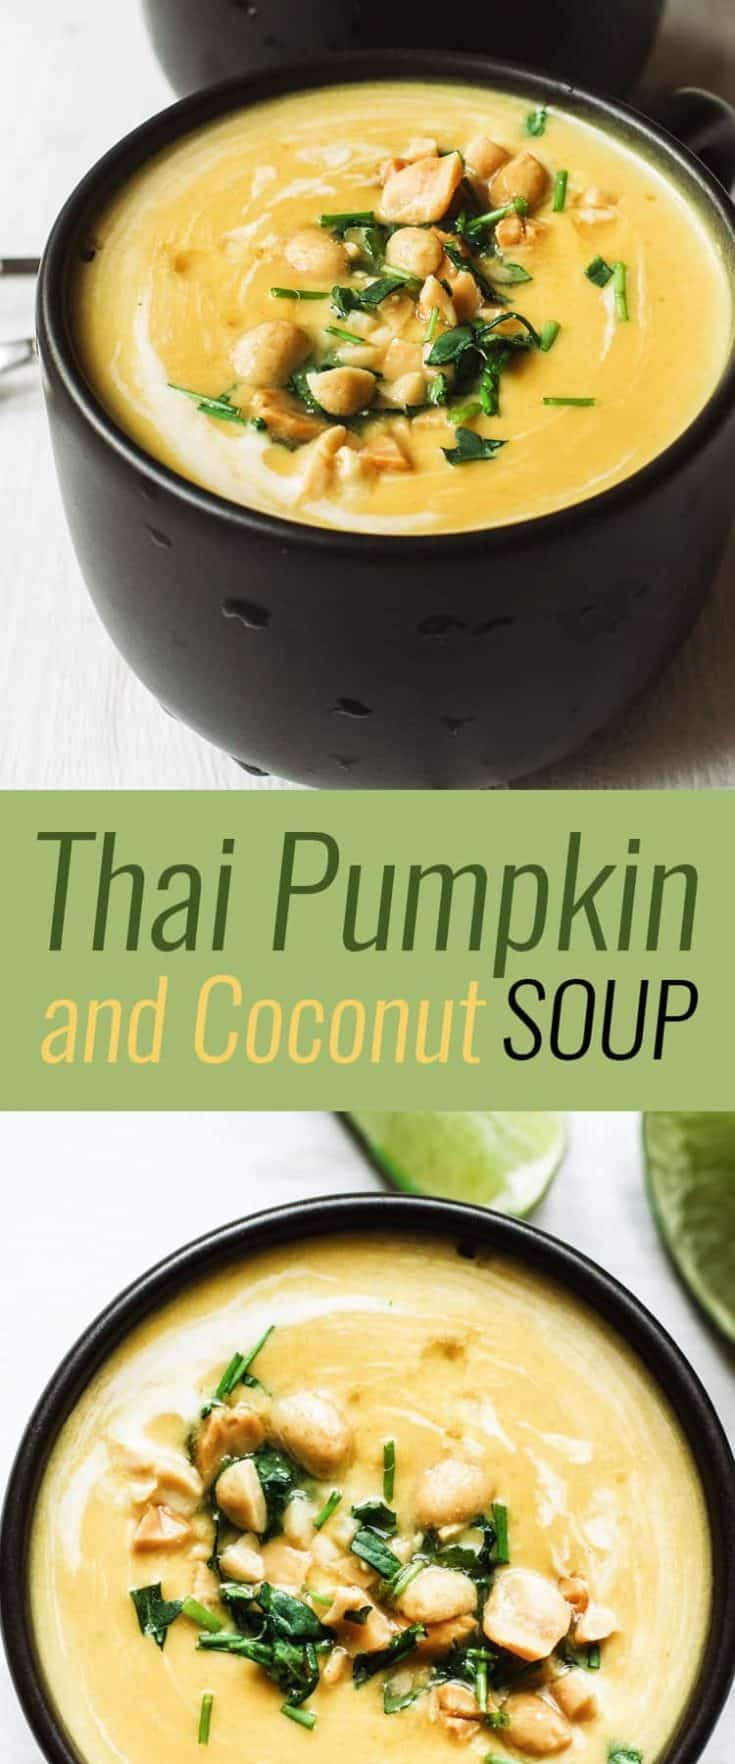 Comforting Thai Pumpkin and Coconut Soup has a bit of kick from curry paste and plenty of creaminess from yummy coconut milk. Delicious indeed, and a Thai pumpkin soup you'll definitely want to try! #soup #pumpkinsoup #souprecipes